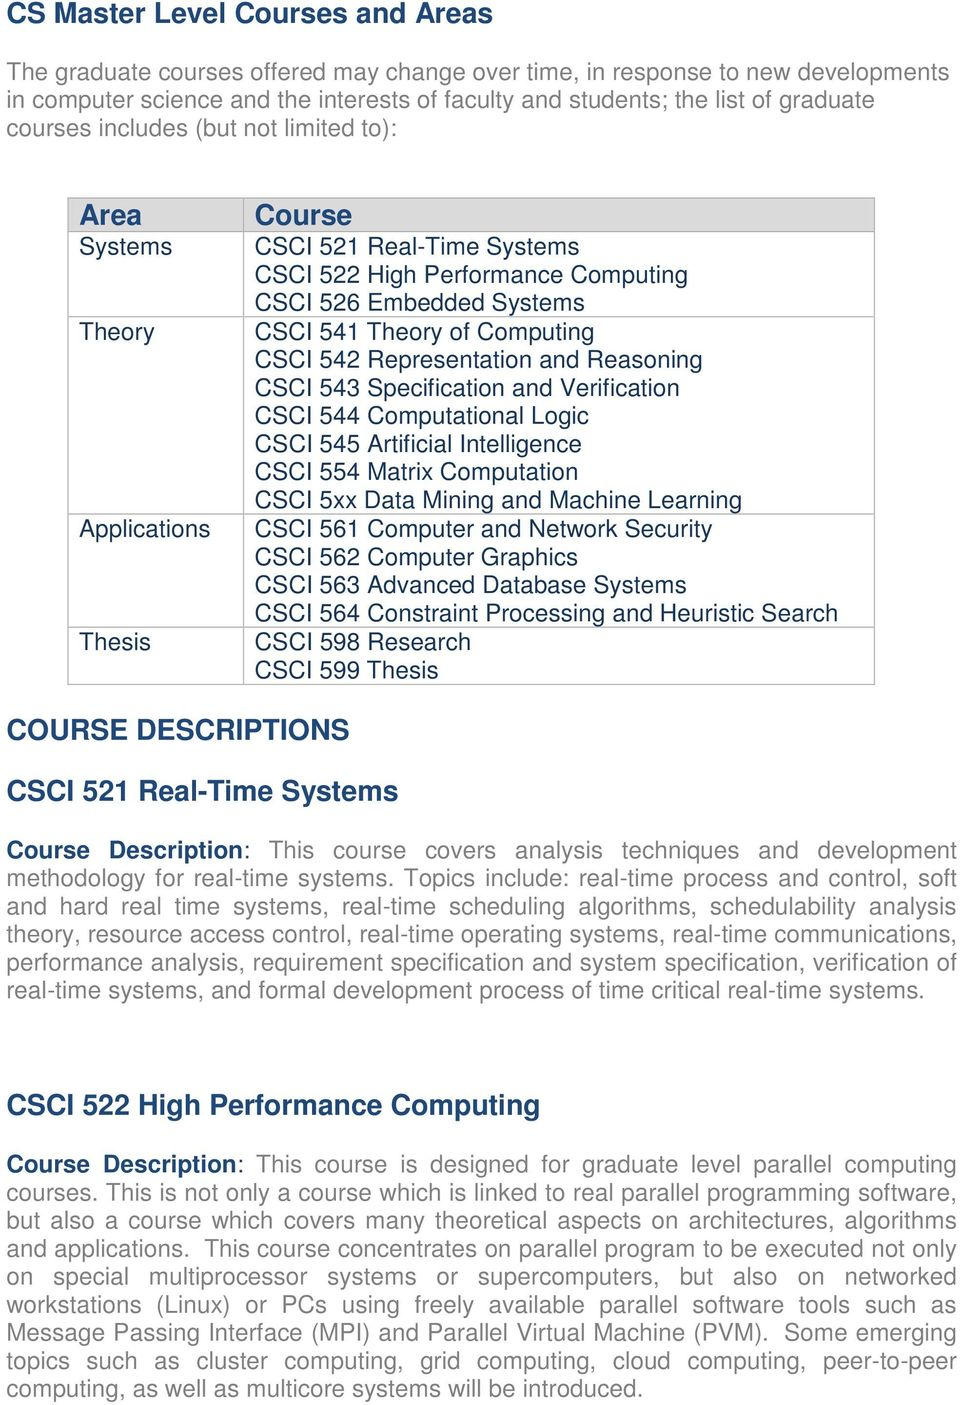 of Computing CSCI 542 Representation and Reasoning CSCI 543 Specification and Verification CSCI 544 Computational Logic CSCI 545 Artificial Intelligence CSCI 554 Matrix Computation CSCI 5xx Data